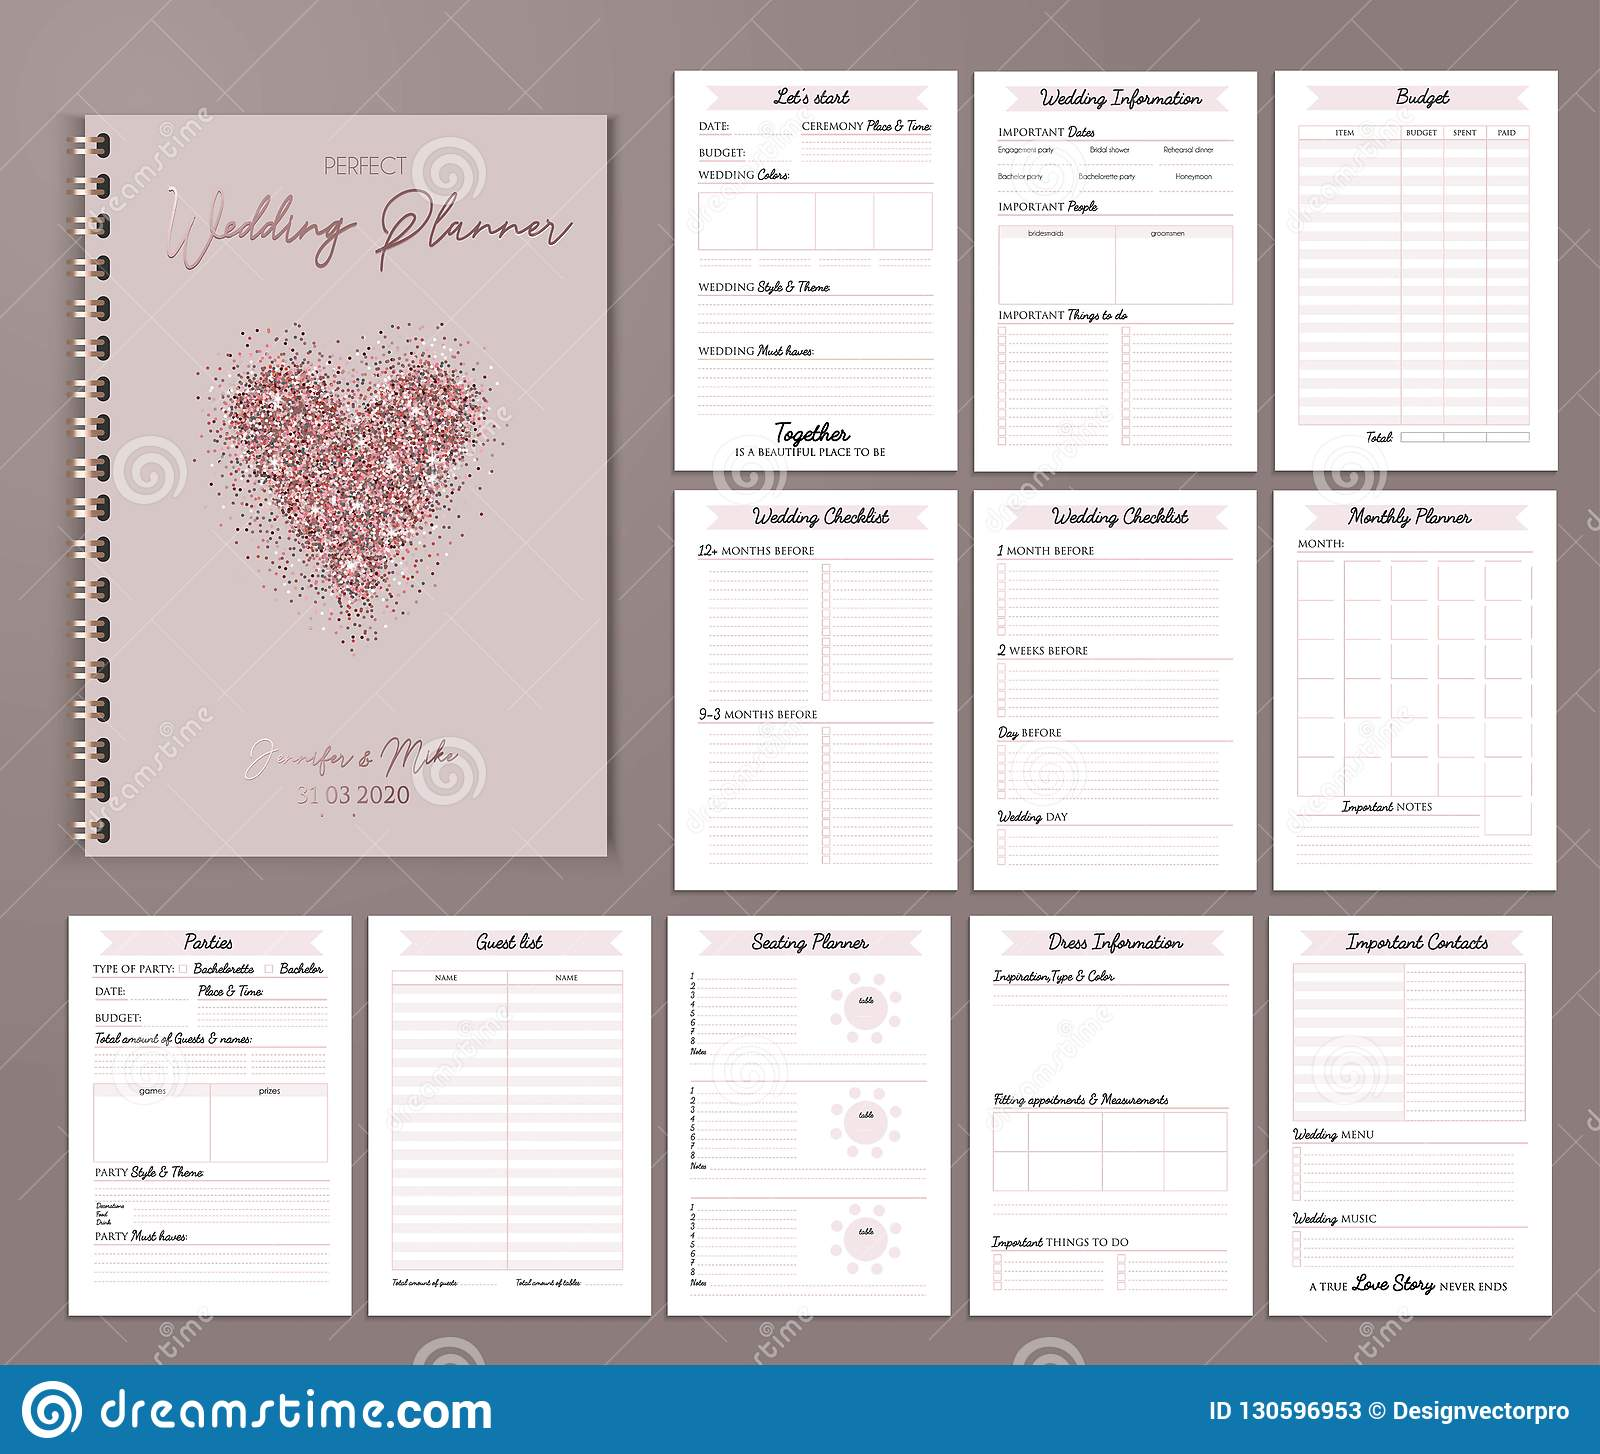 graphic regarding Party Planner Printable titled Marriage Planner Printable Layout With Checklists, Substantial